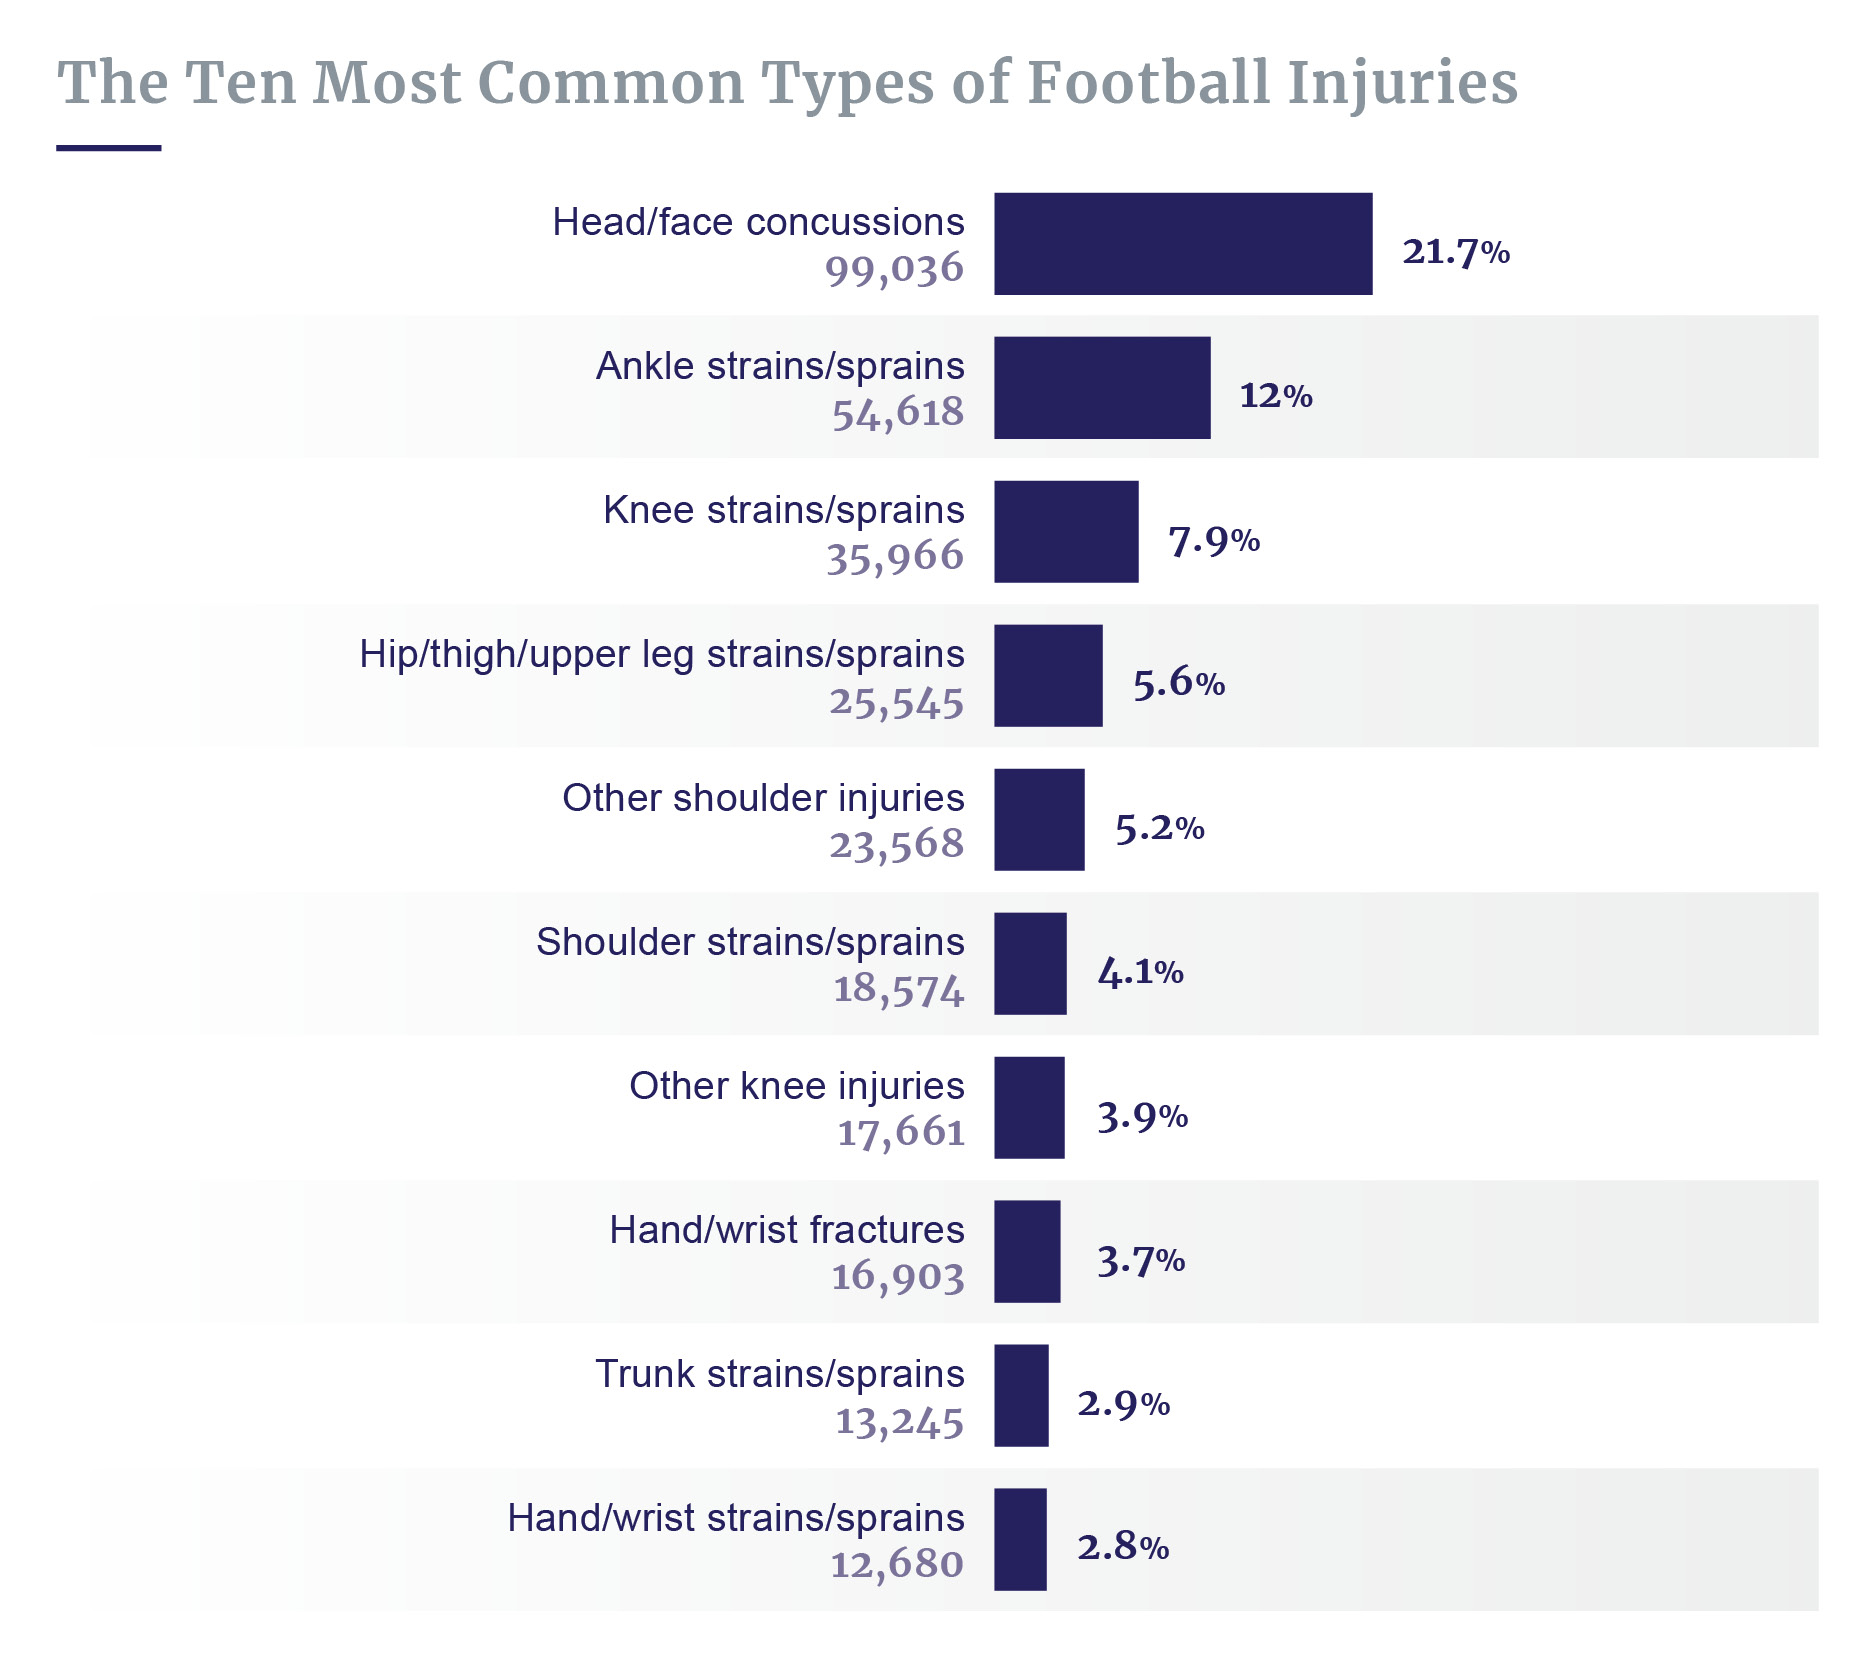 Common types of football injuries